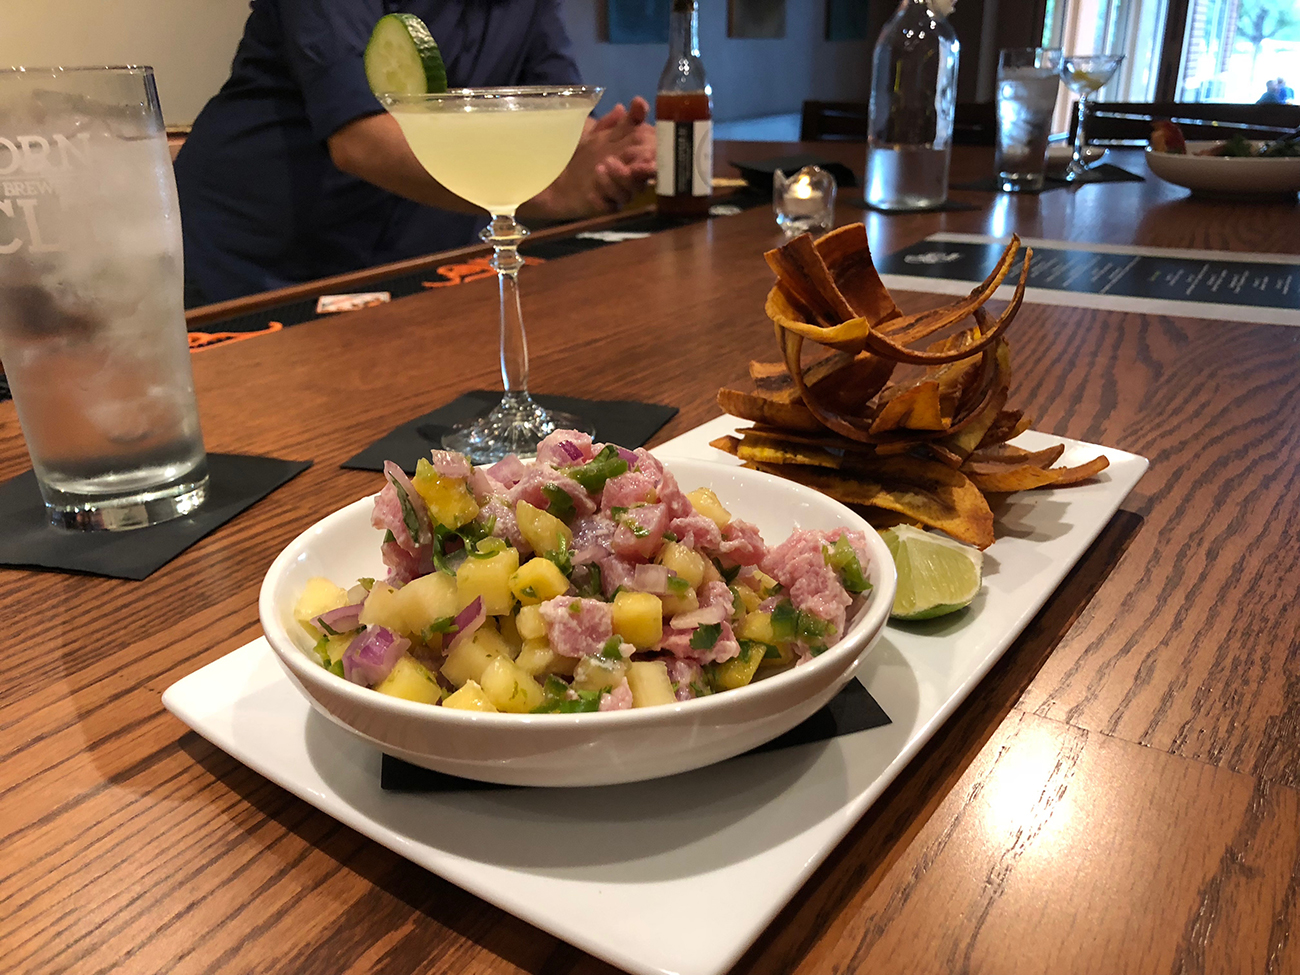 The Queen & Glass, a sneaky new cocktail bar, opens today in Dilworth